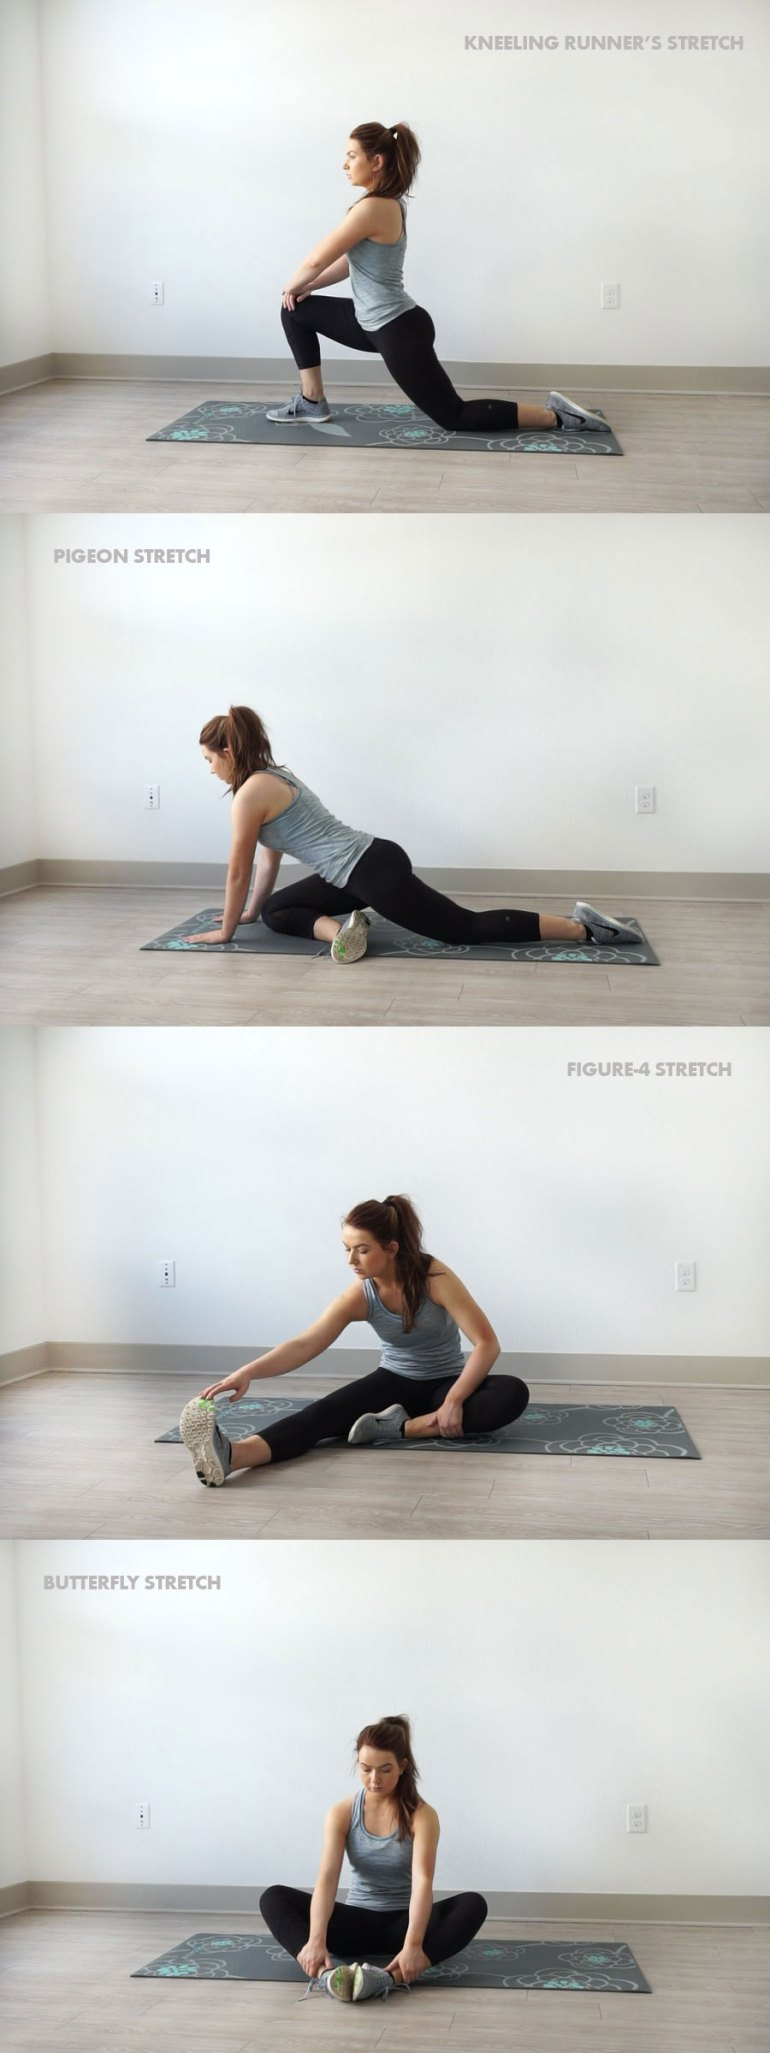 20-Minute At Home Leg and Butt Workout | Stretches